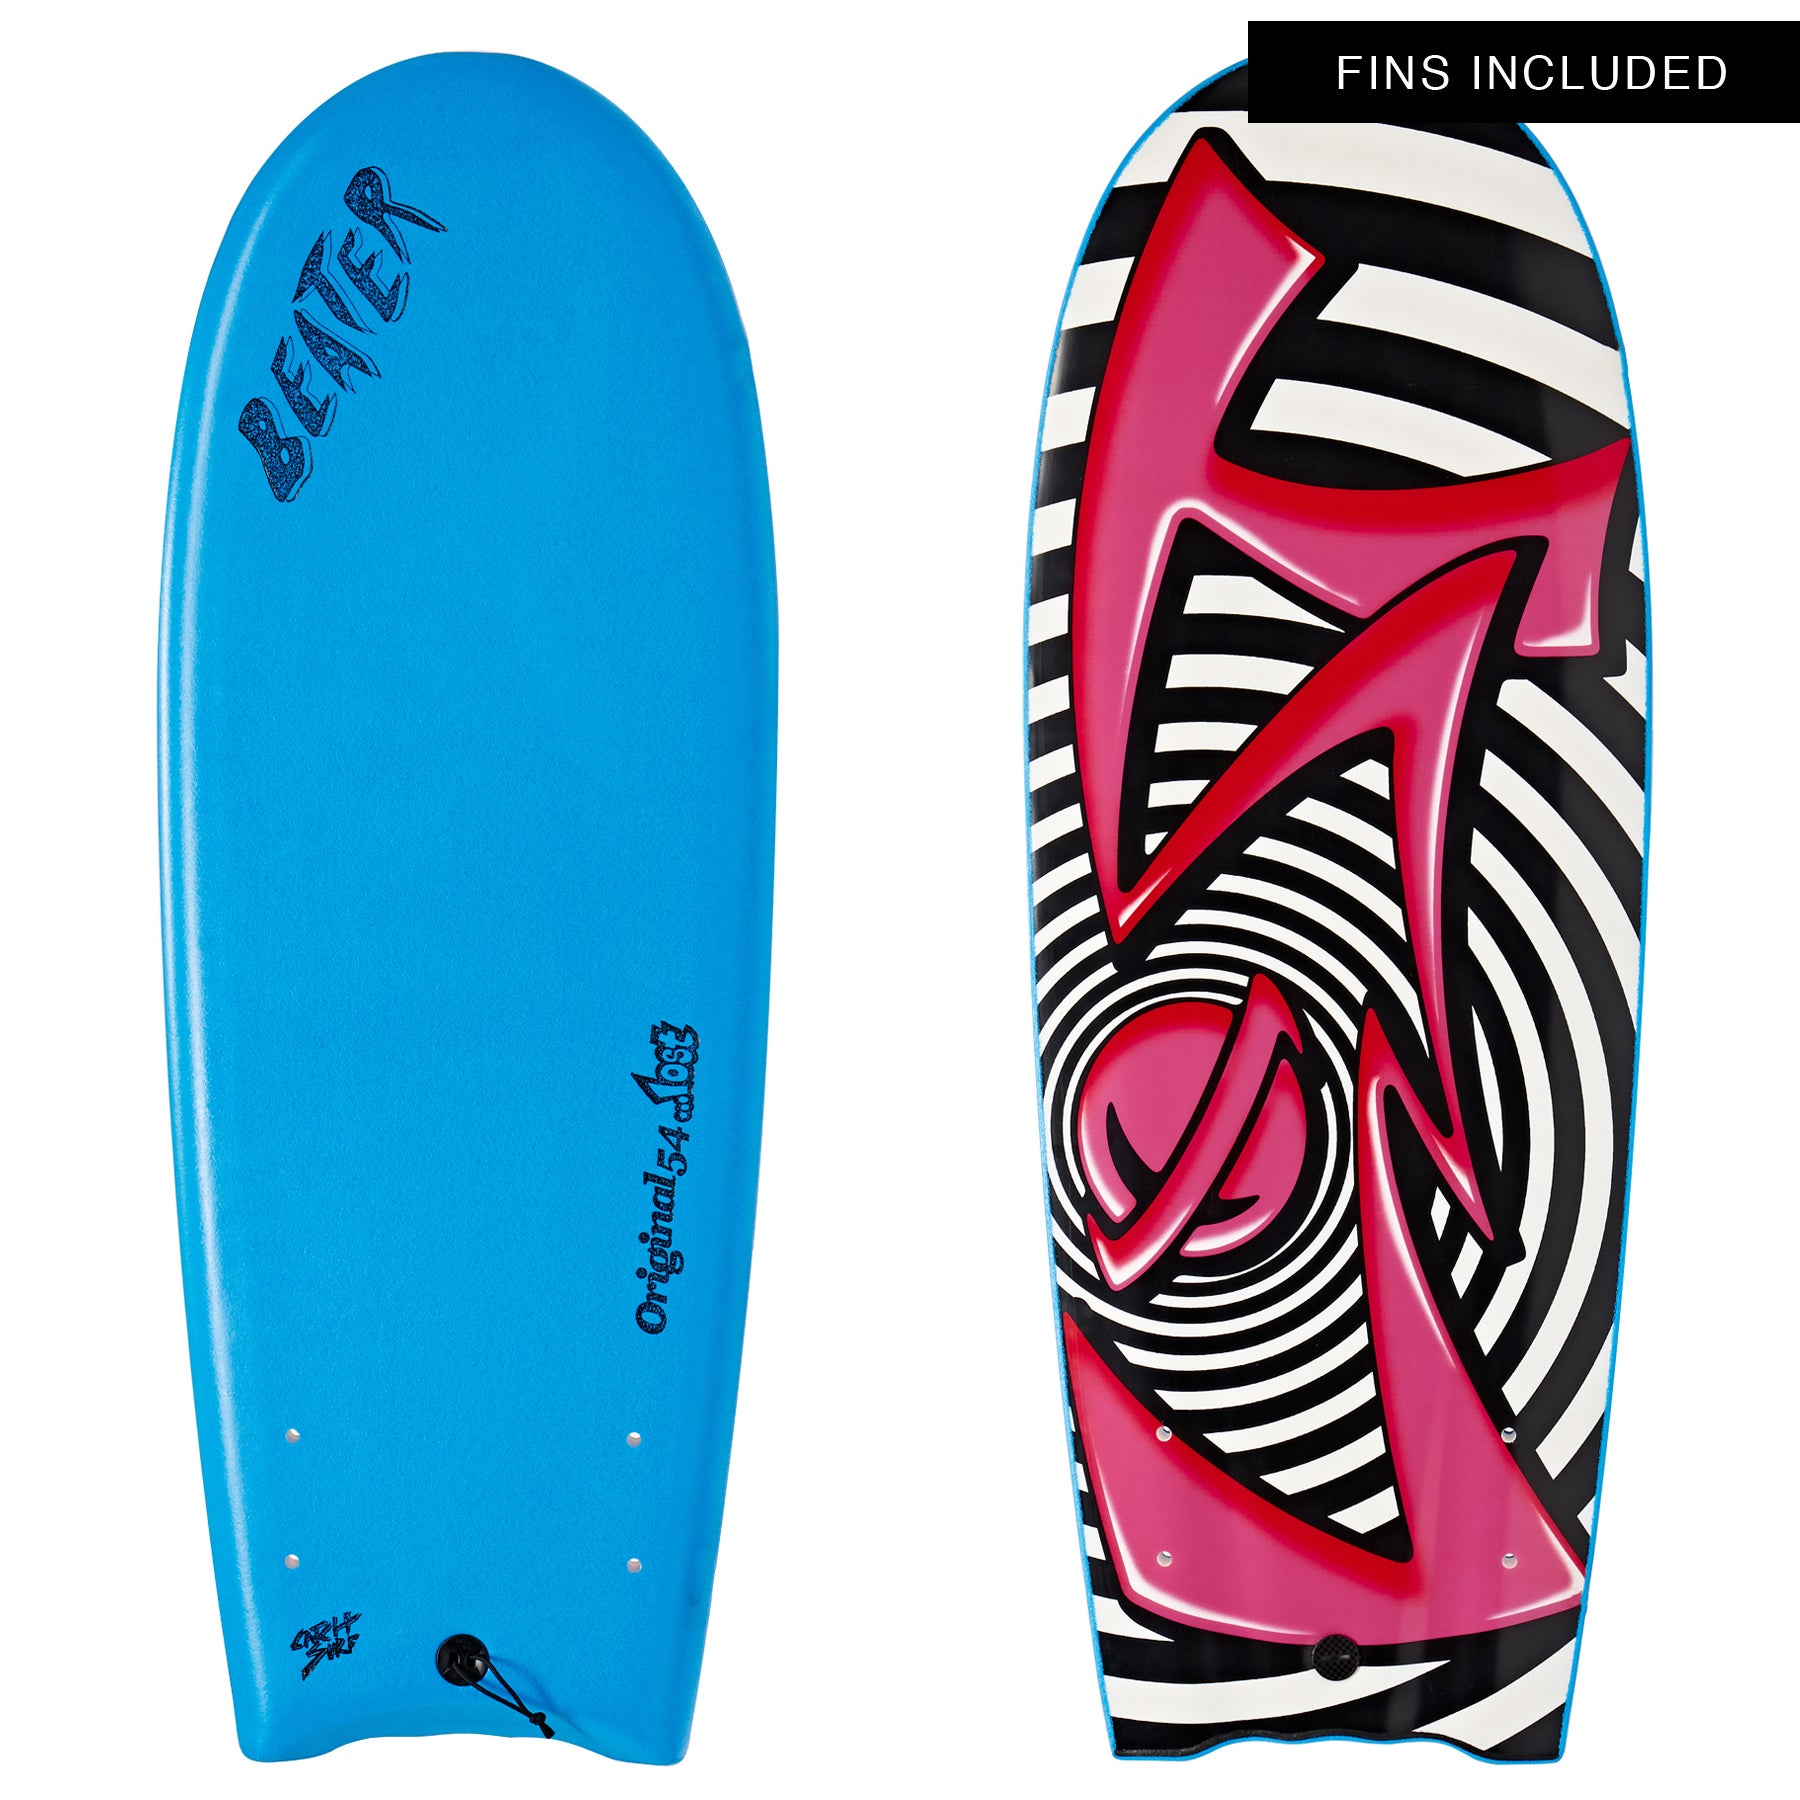 Catch Surf Beater Original Twin Fin Lost Edition 4 Surfboard - Az Blue